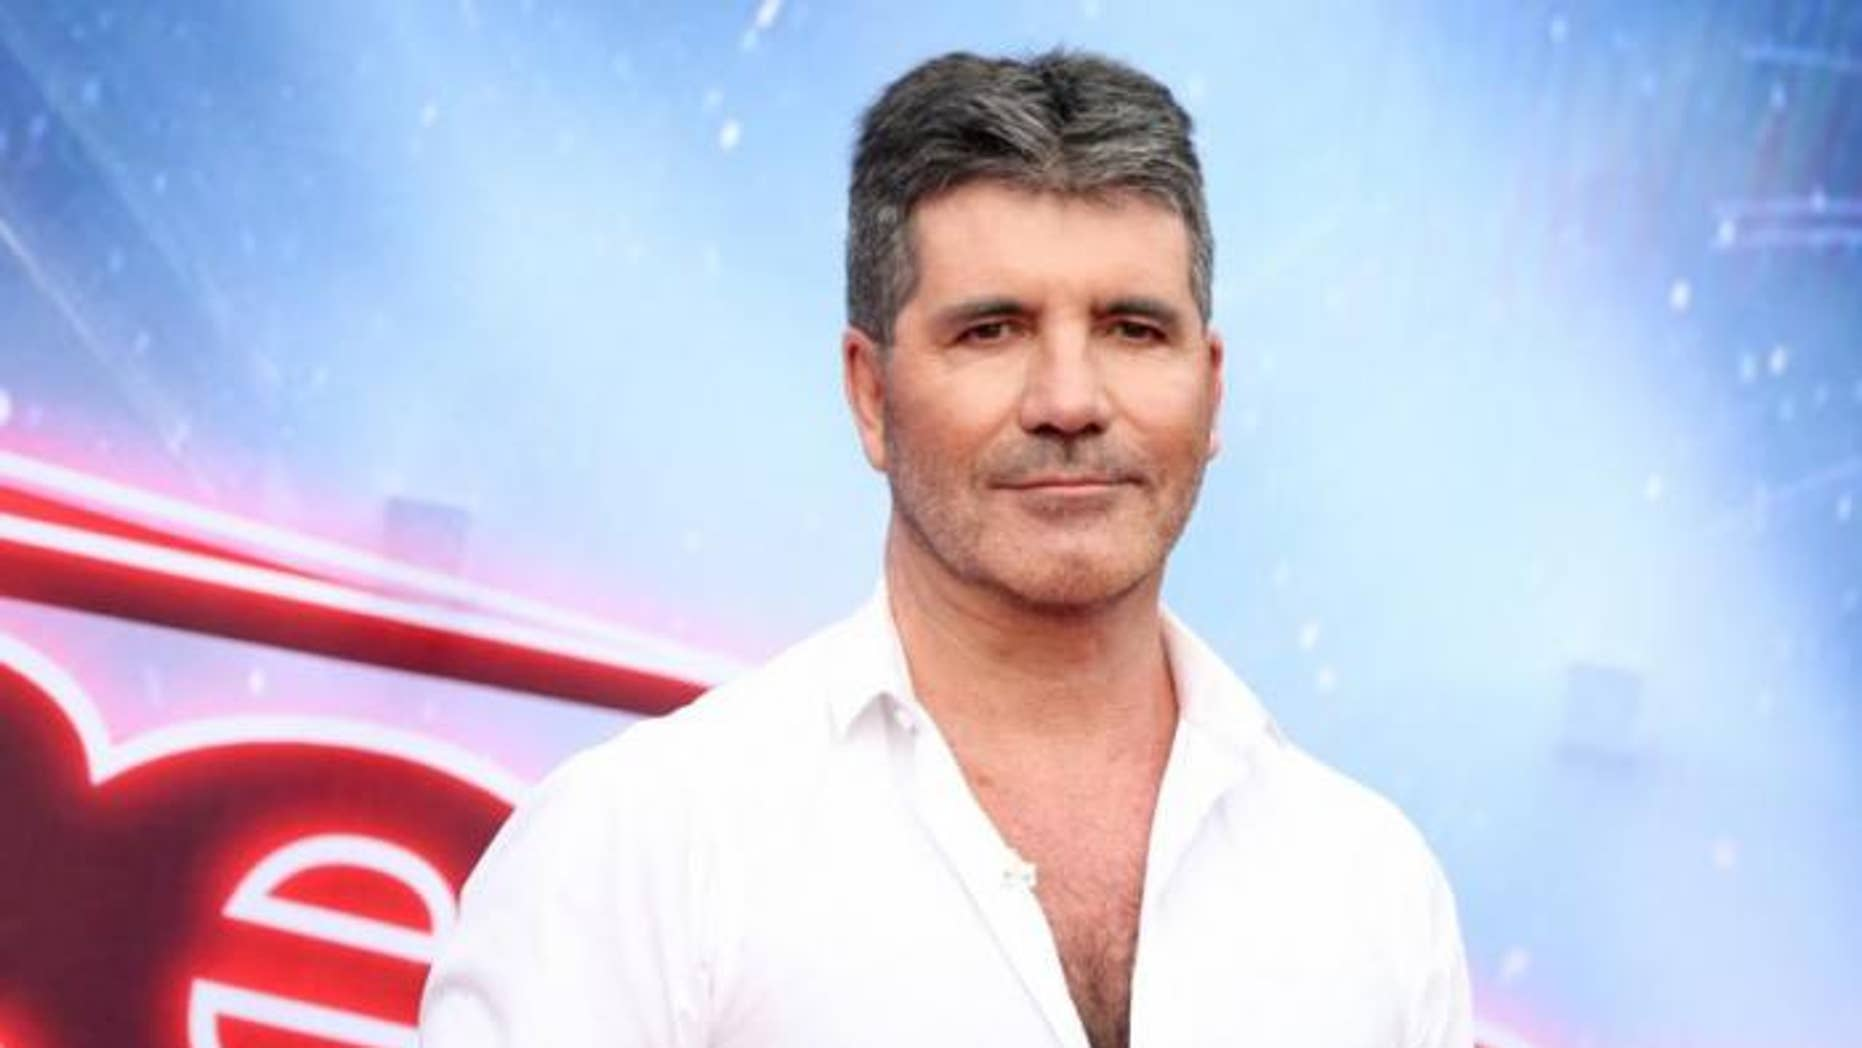 """Simon Cowell got emotional during an audition on """"Britain's Got Talent."""""""